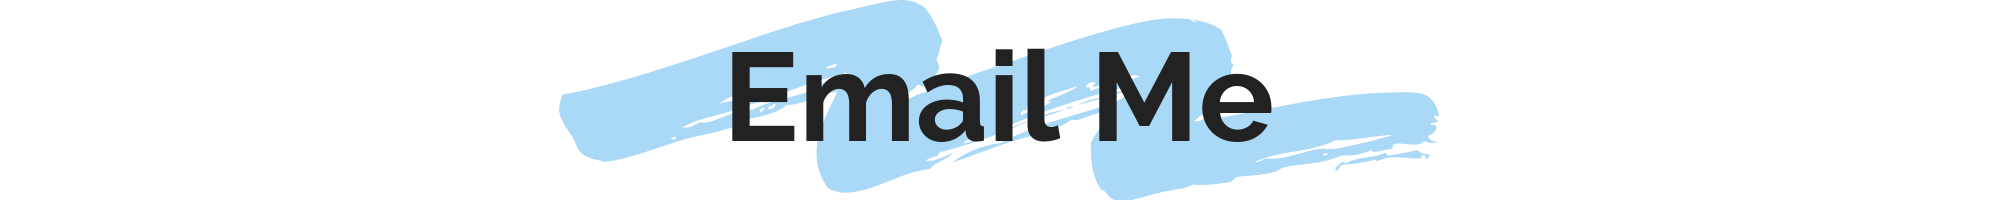 Email Marianne Wisenthal